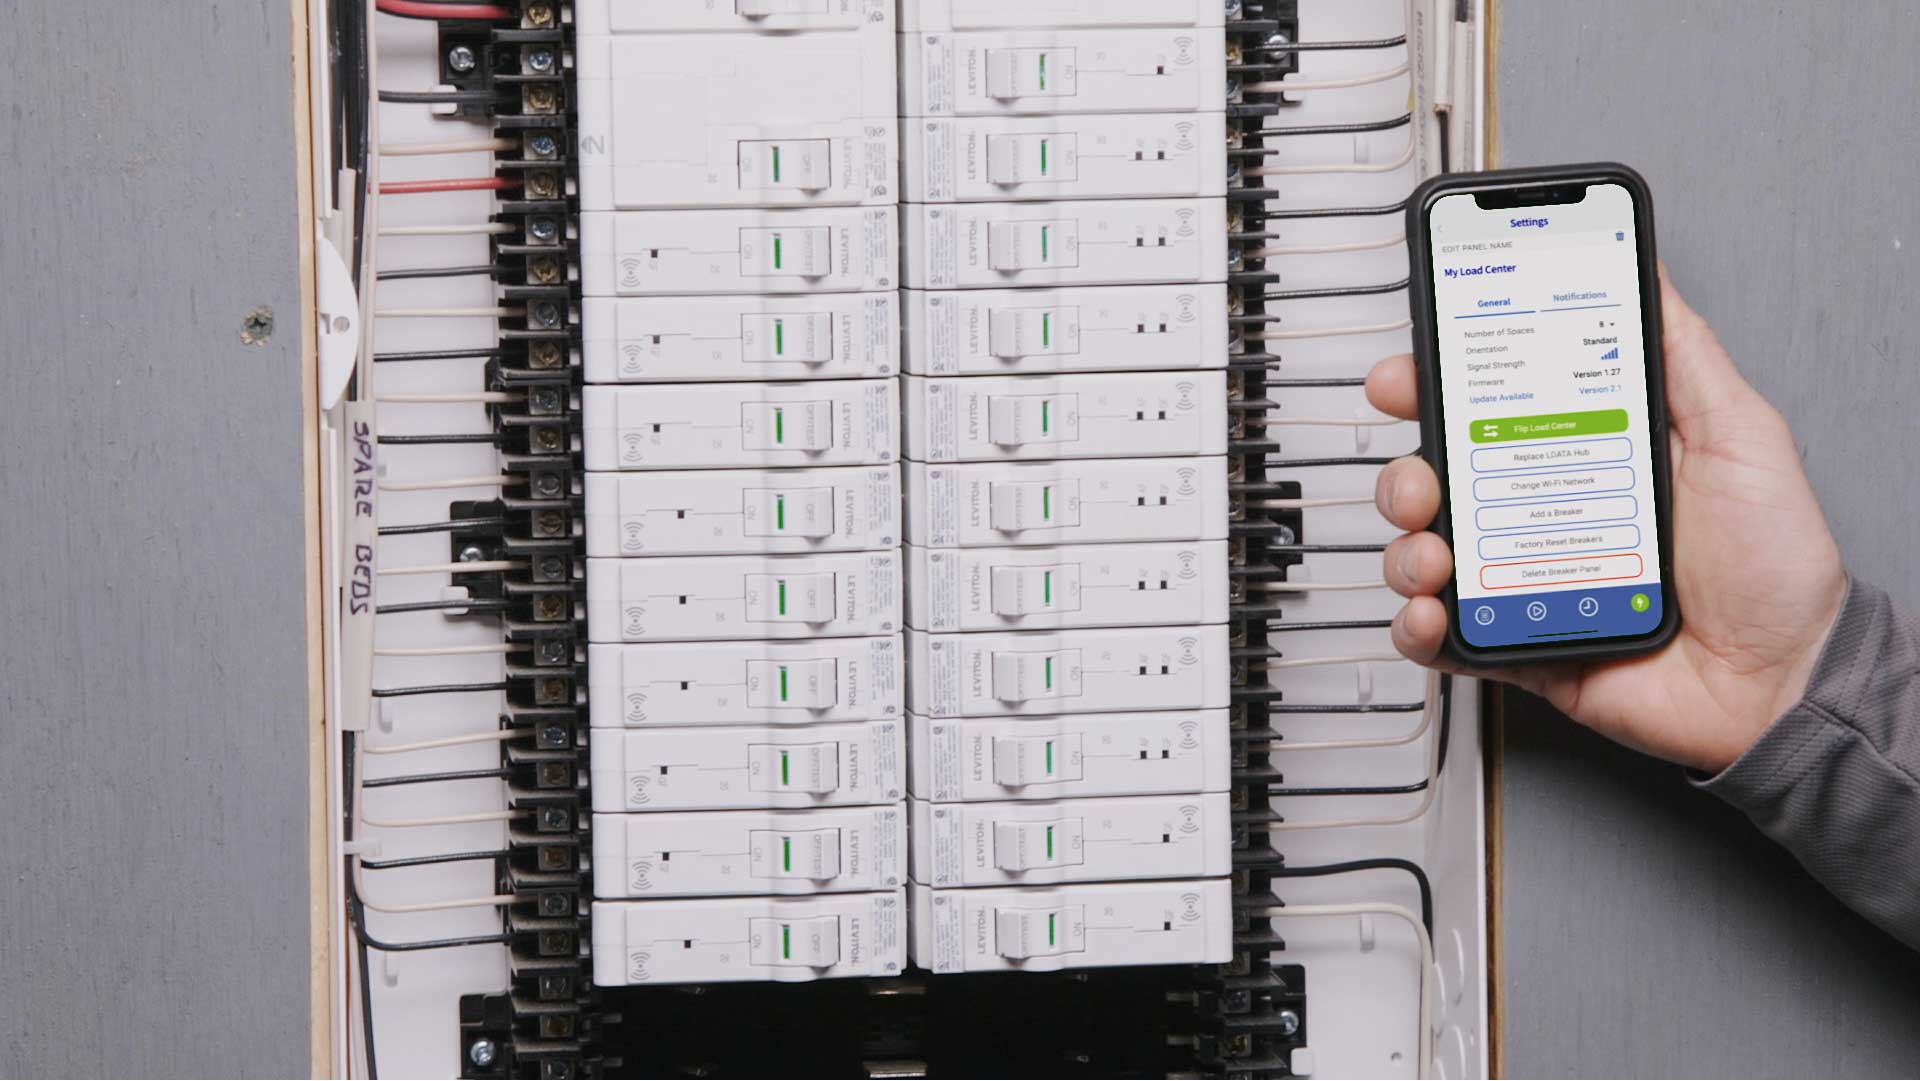 leviton launches next generation, internet connected load center